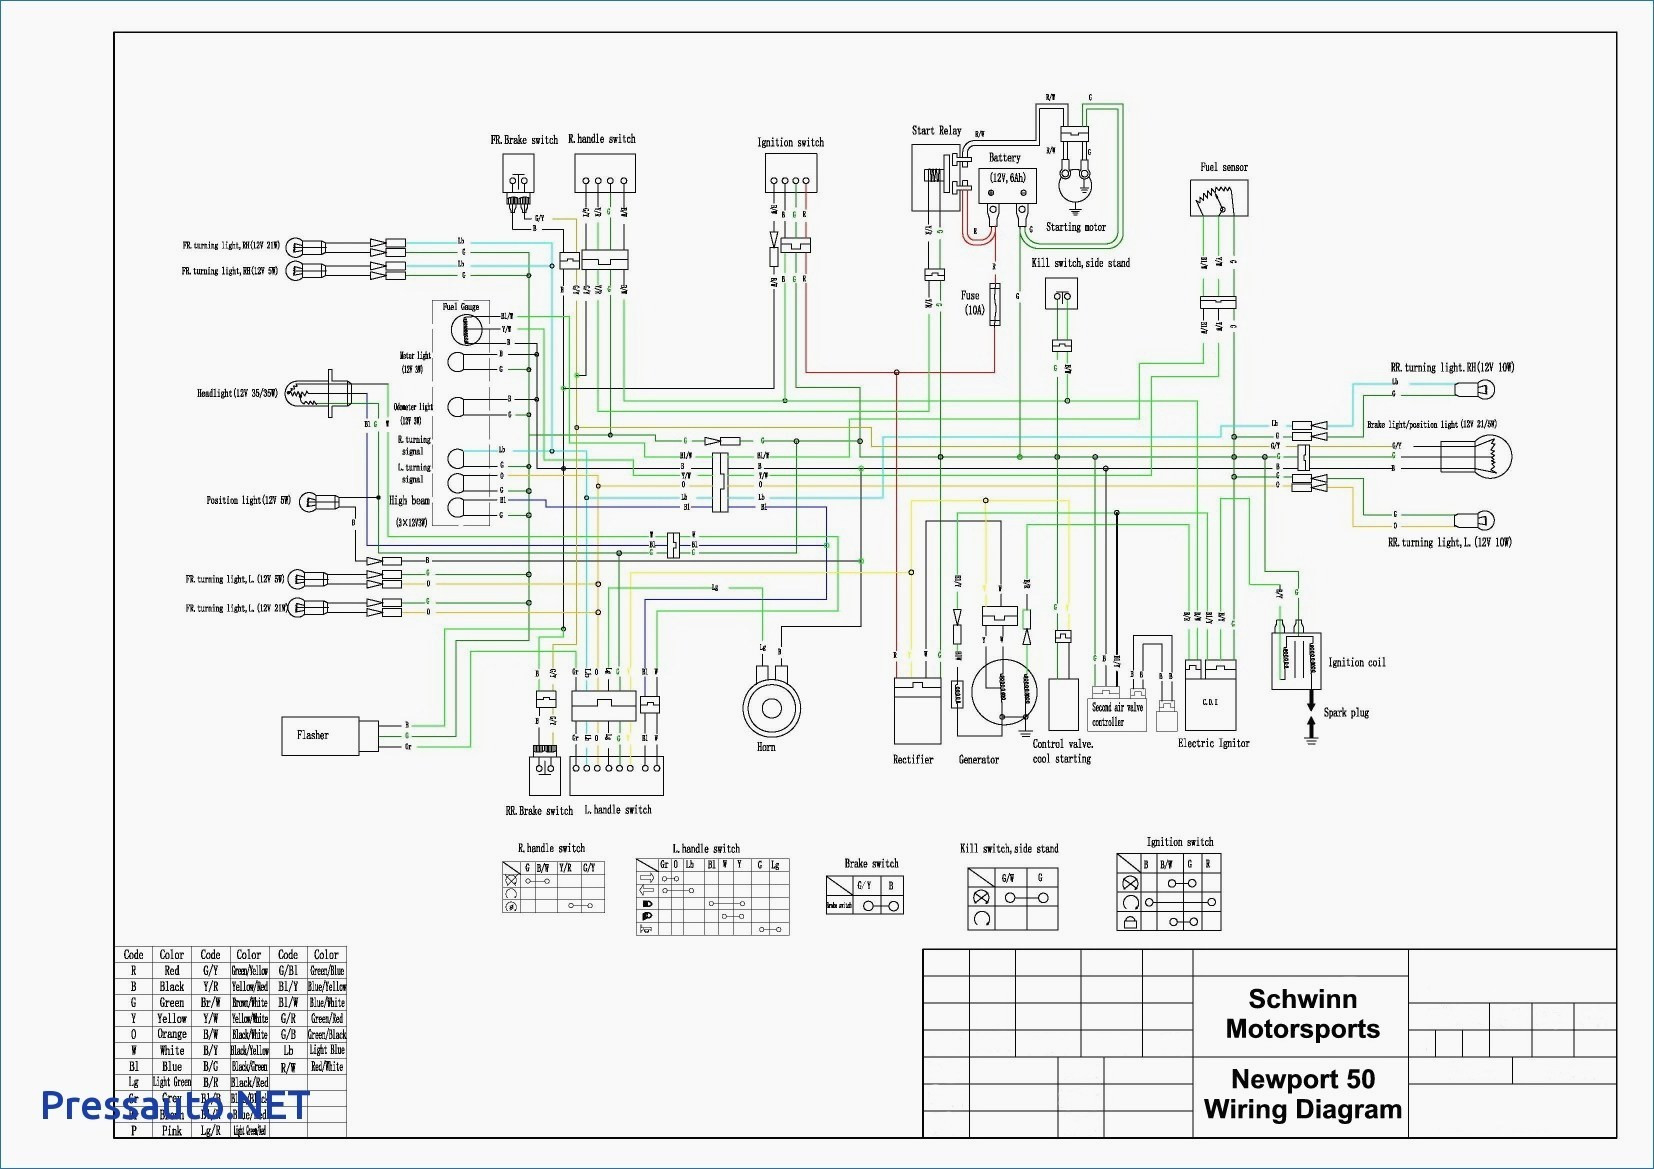 Pride Victory Scooter Wiring Diagram - Pride Legend Wiring Diagram Fresh Wiring  Diagram for Legend Race